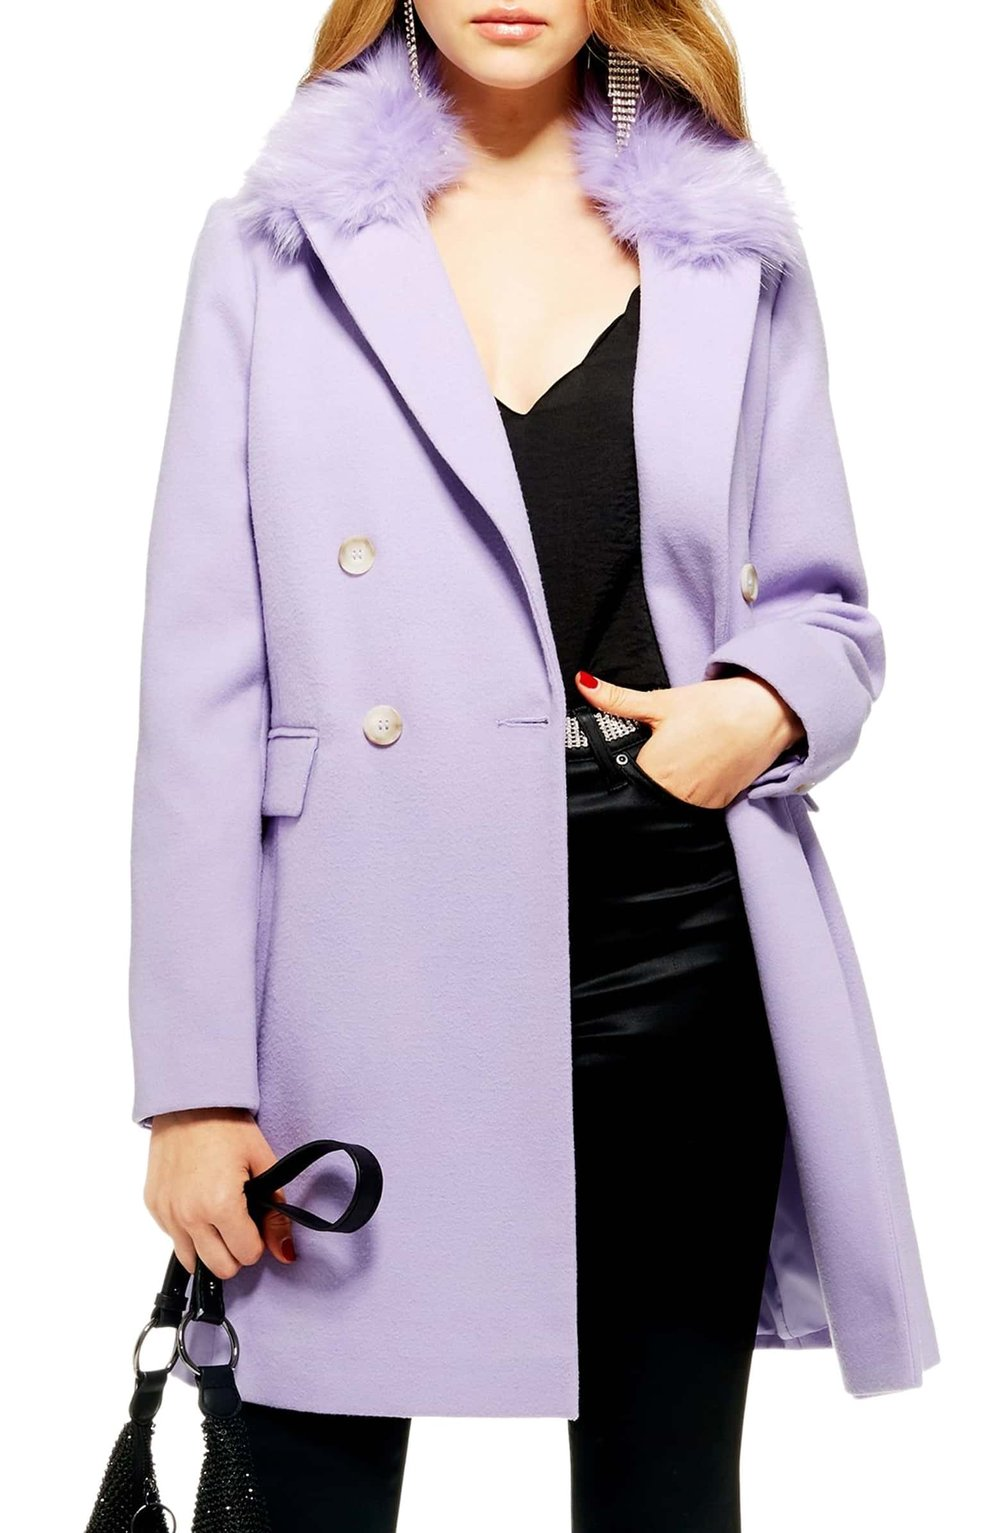 Statement Coat - 40% OFF